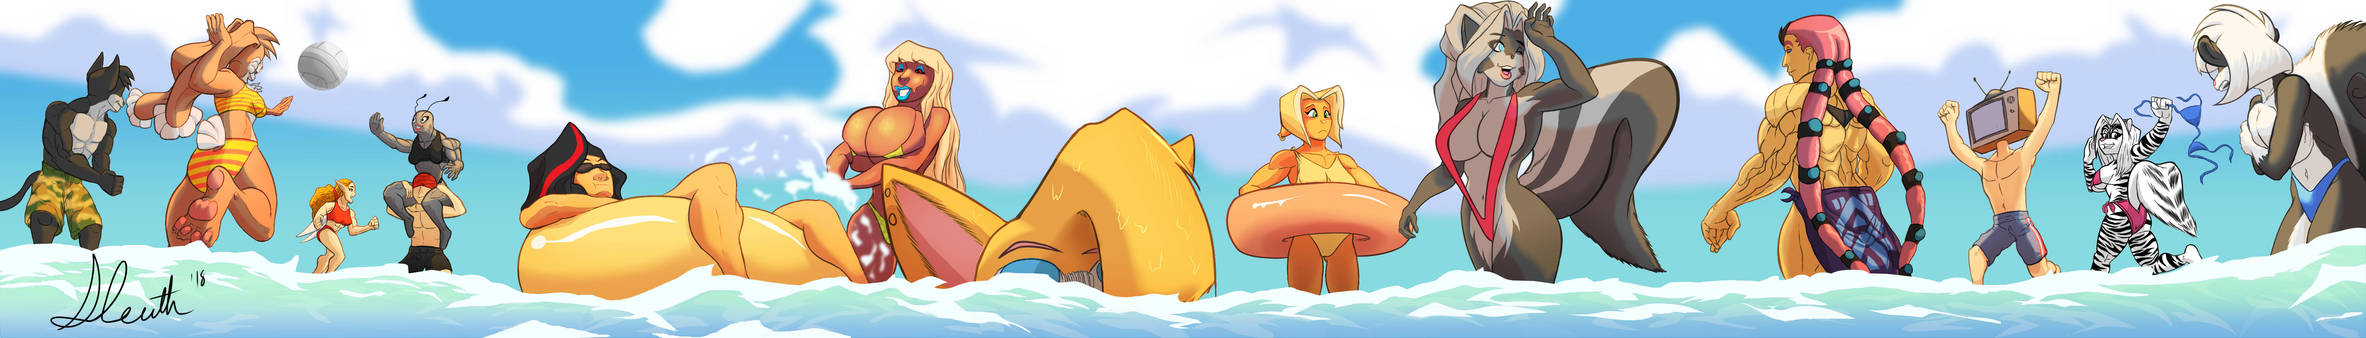 The Beach by the-Sleuth